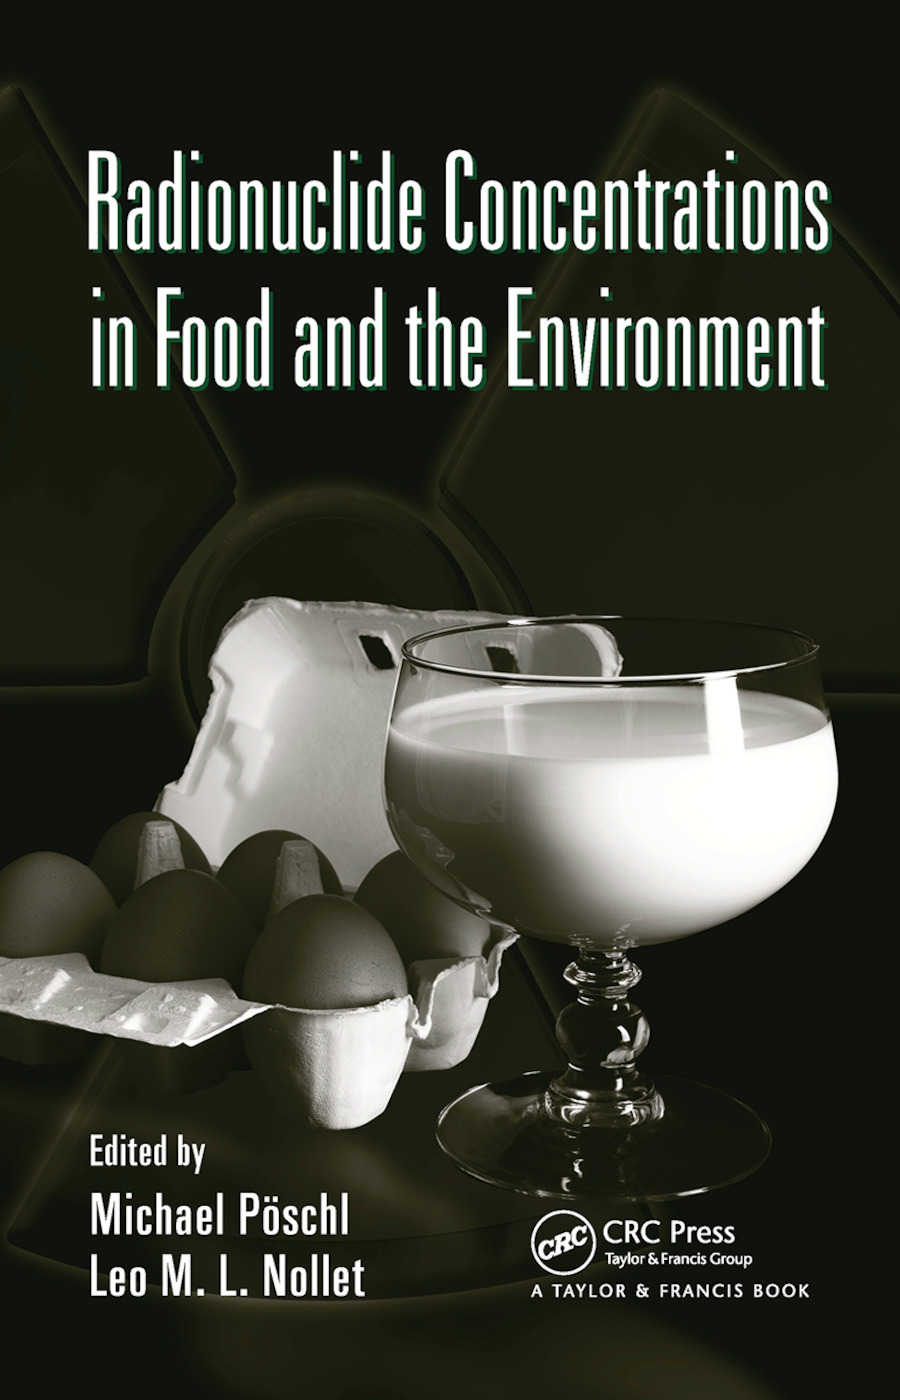 Radionuclide Concentrations in Food and the Environment: 1st Edition (Paperback) book cover